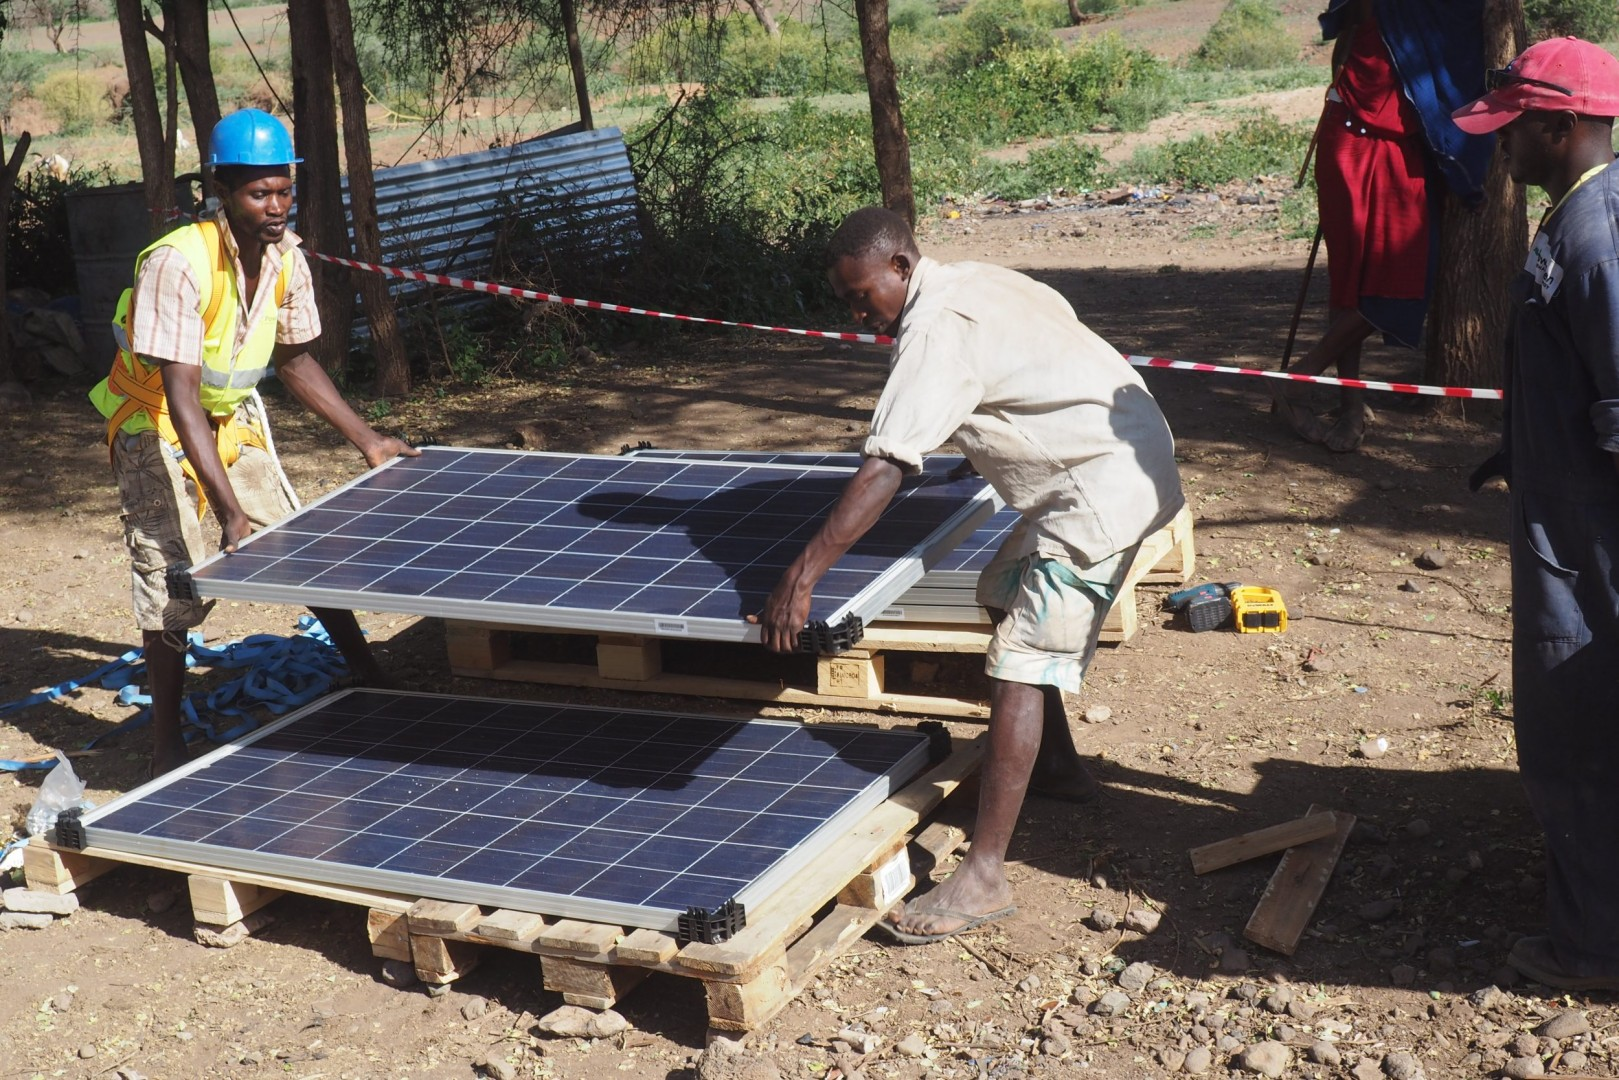 ENGIE's purchase of Mobisol comes after the buyer's efforts to roll-out PAYG solar-plus-storage mini-grids in Tanzania and Zambia (Image credit: ENGIE)